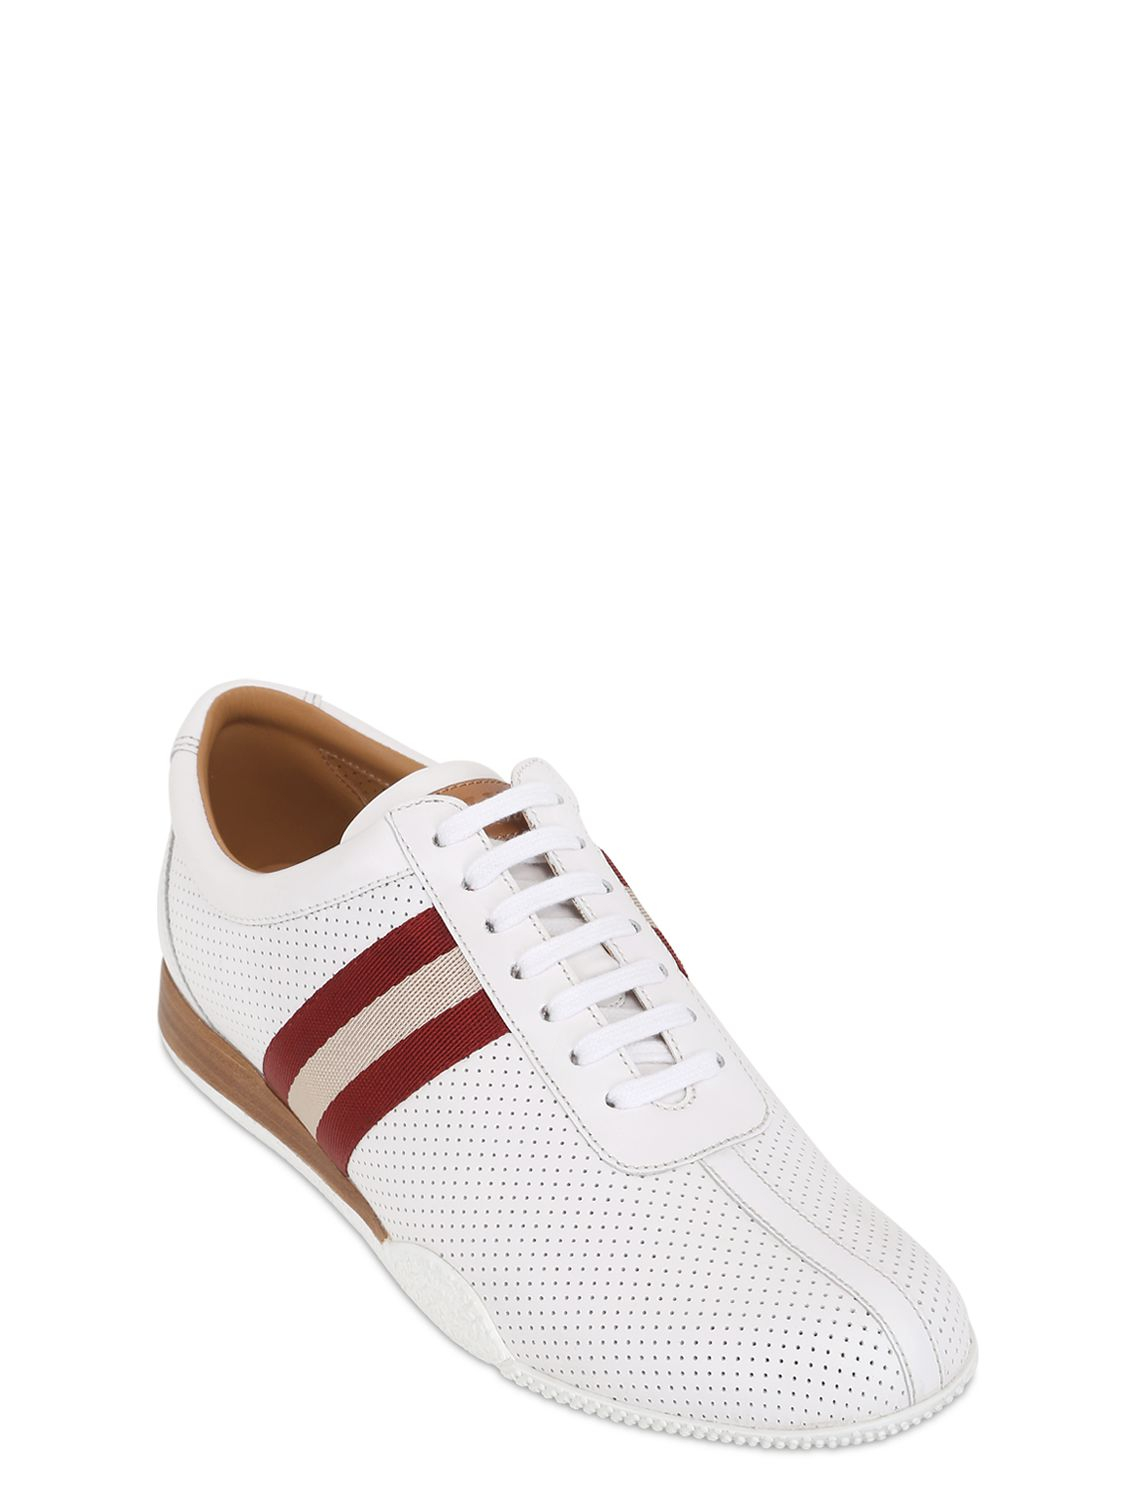 3ab110c63 Bally Frenz Perforated Leather Sneakers in White for Men - Lyst